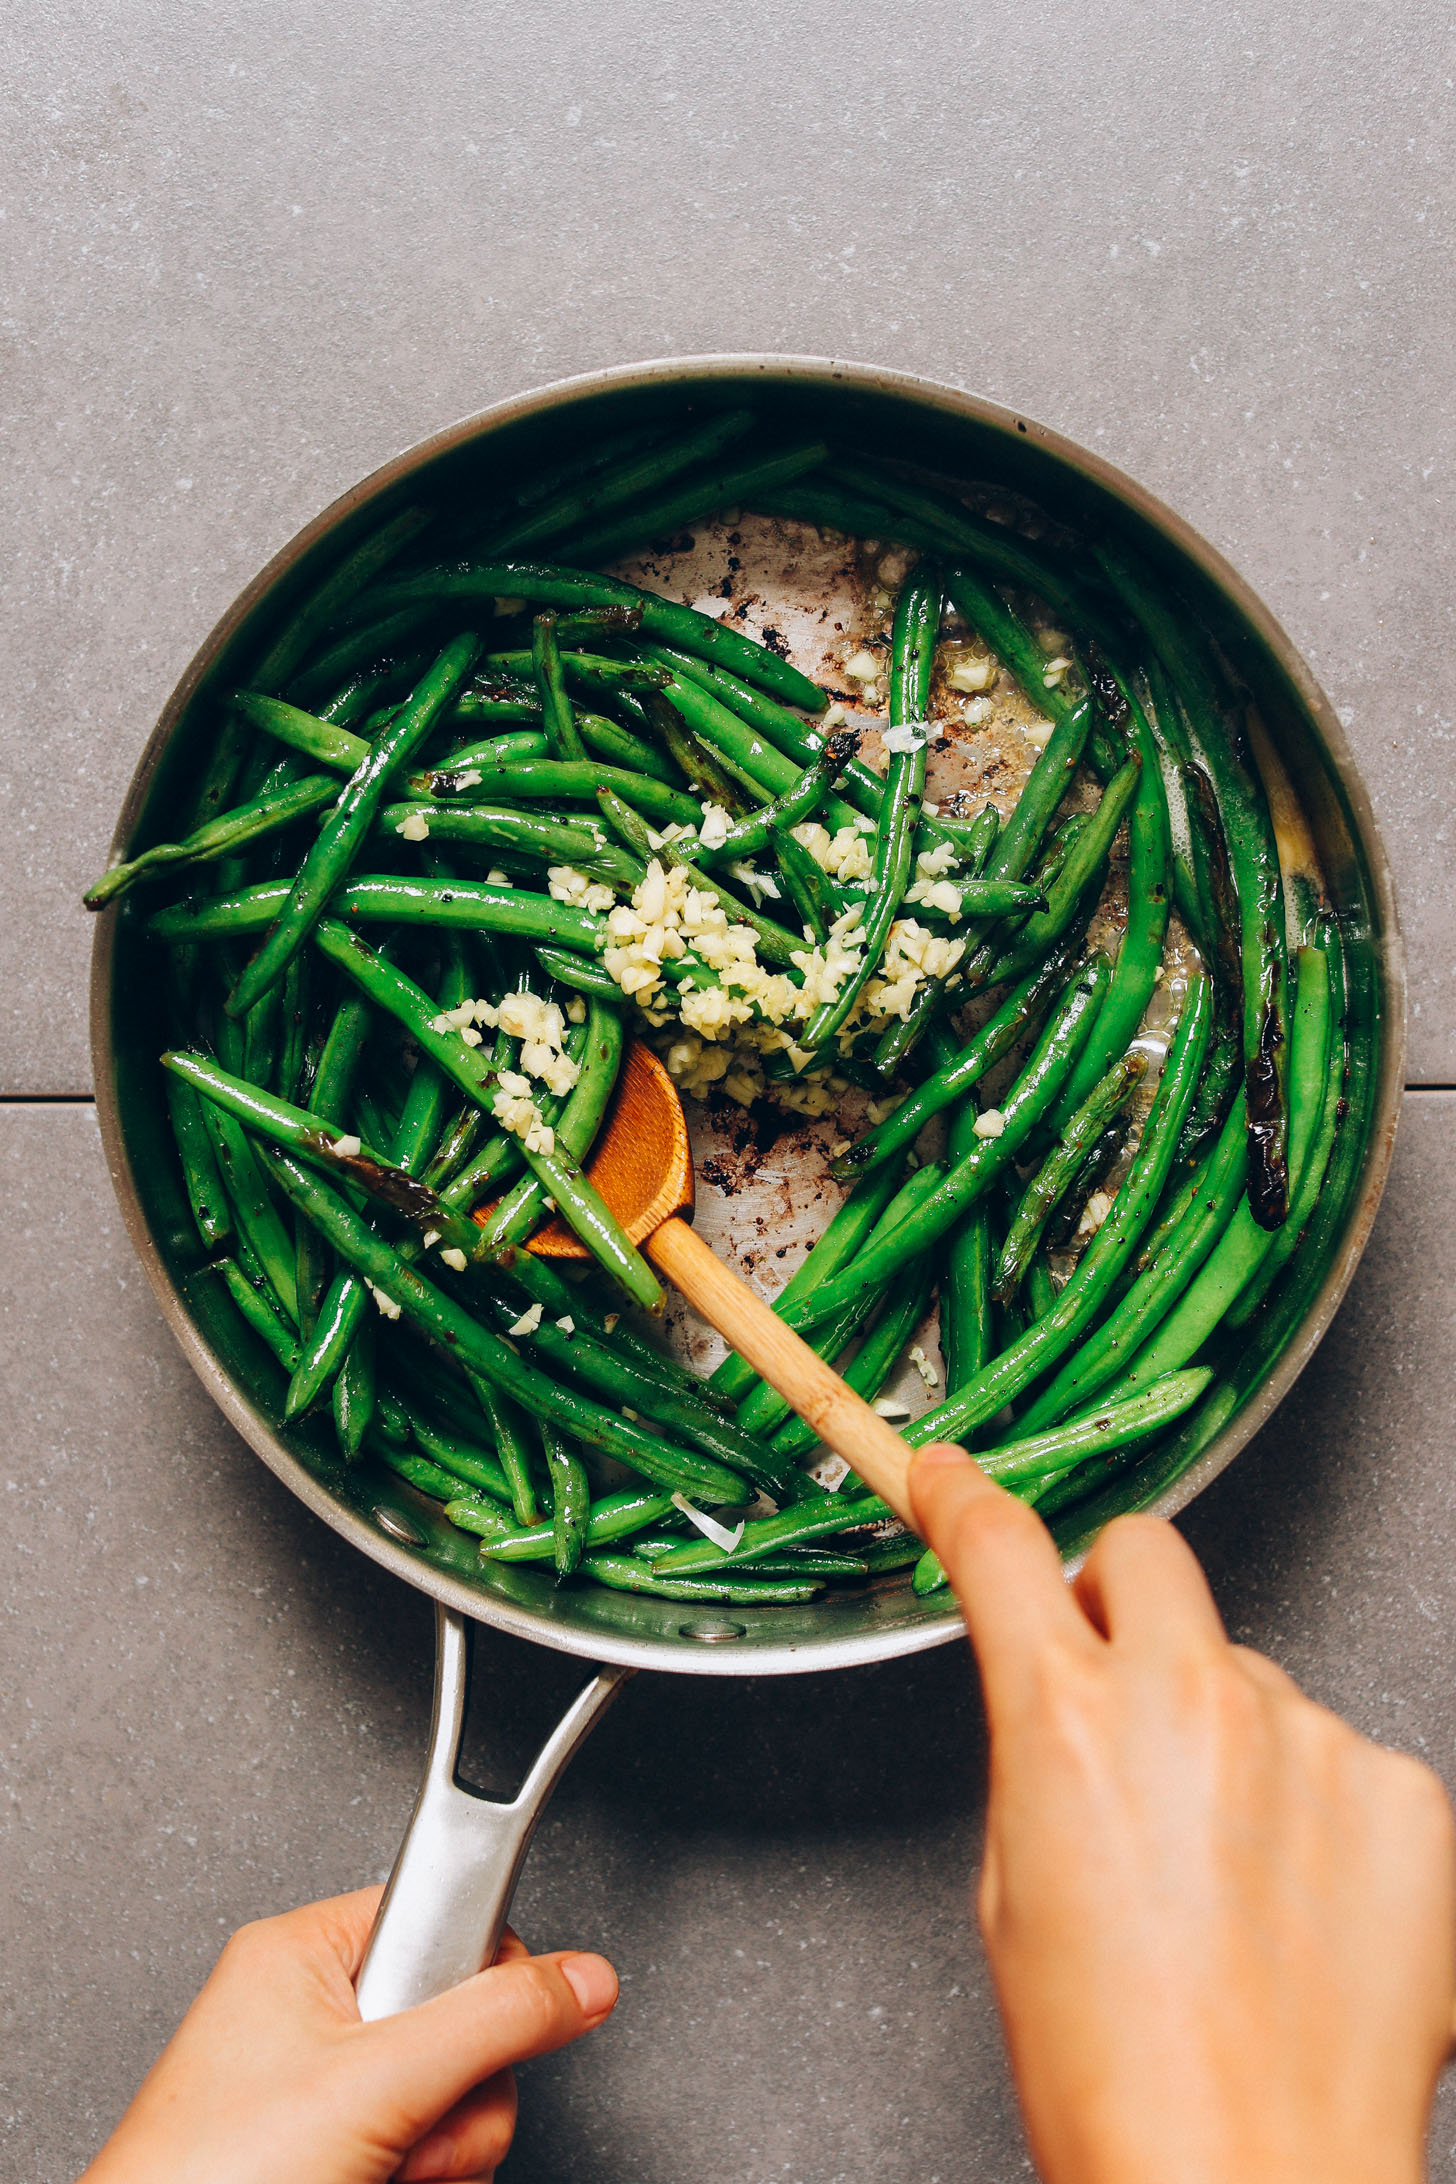 Pan of Green Beans with minced garlic